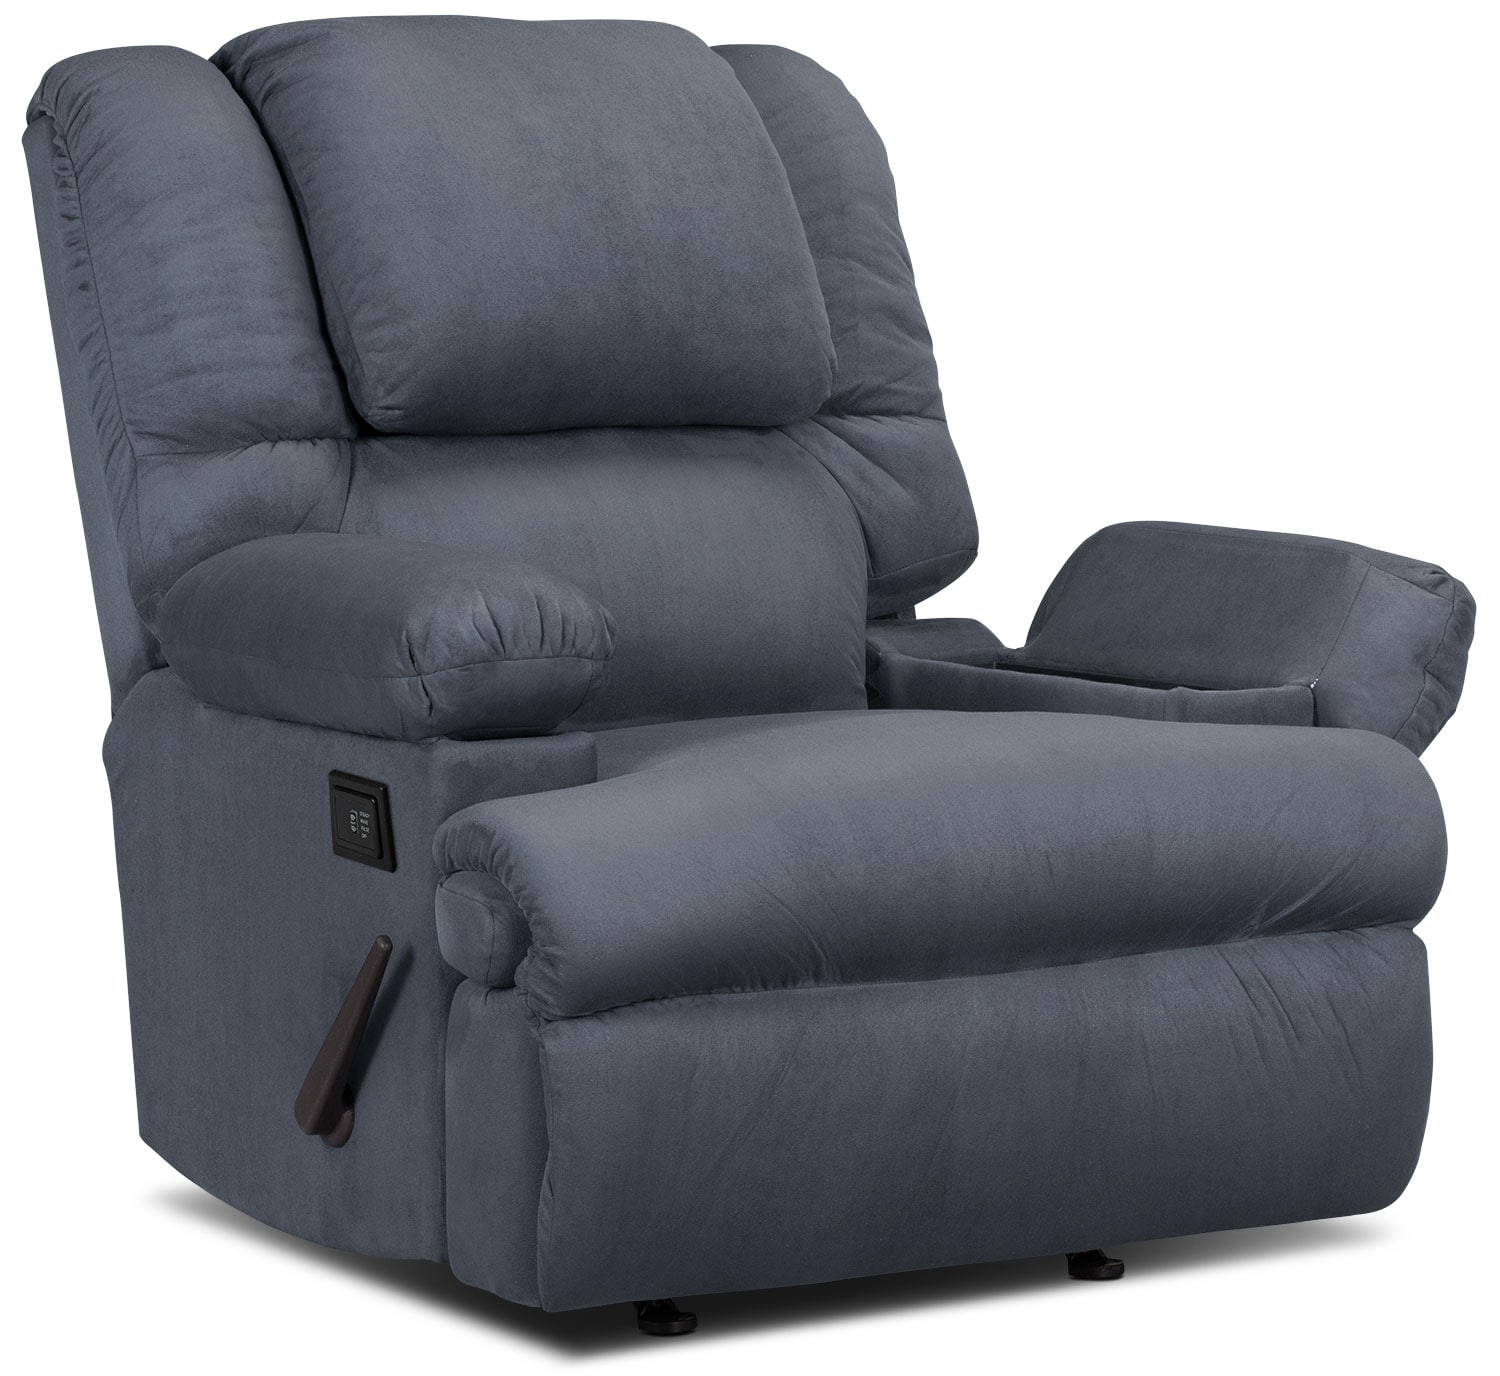 Living Room Furniture - Designed2B Recliner 5598 Padded Suede Massage Recliner with Storage Arms - Navy